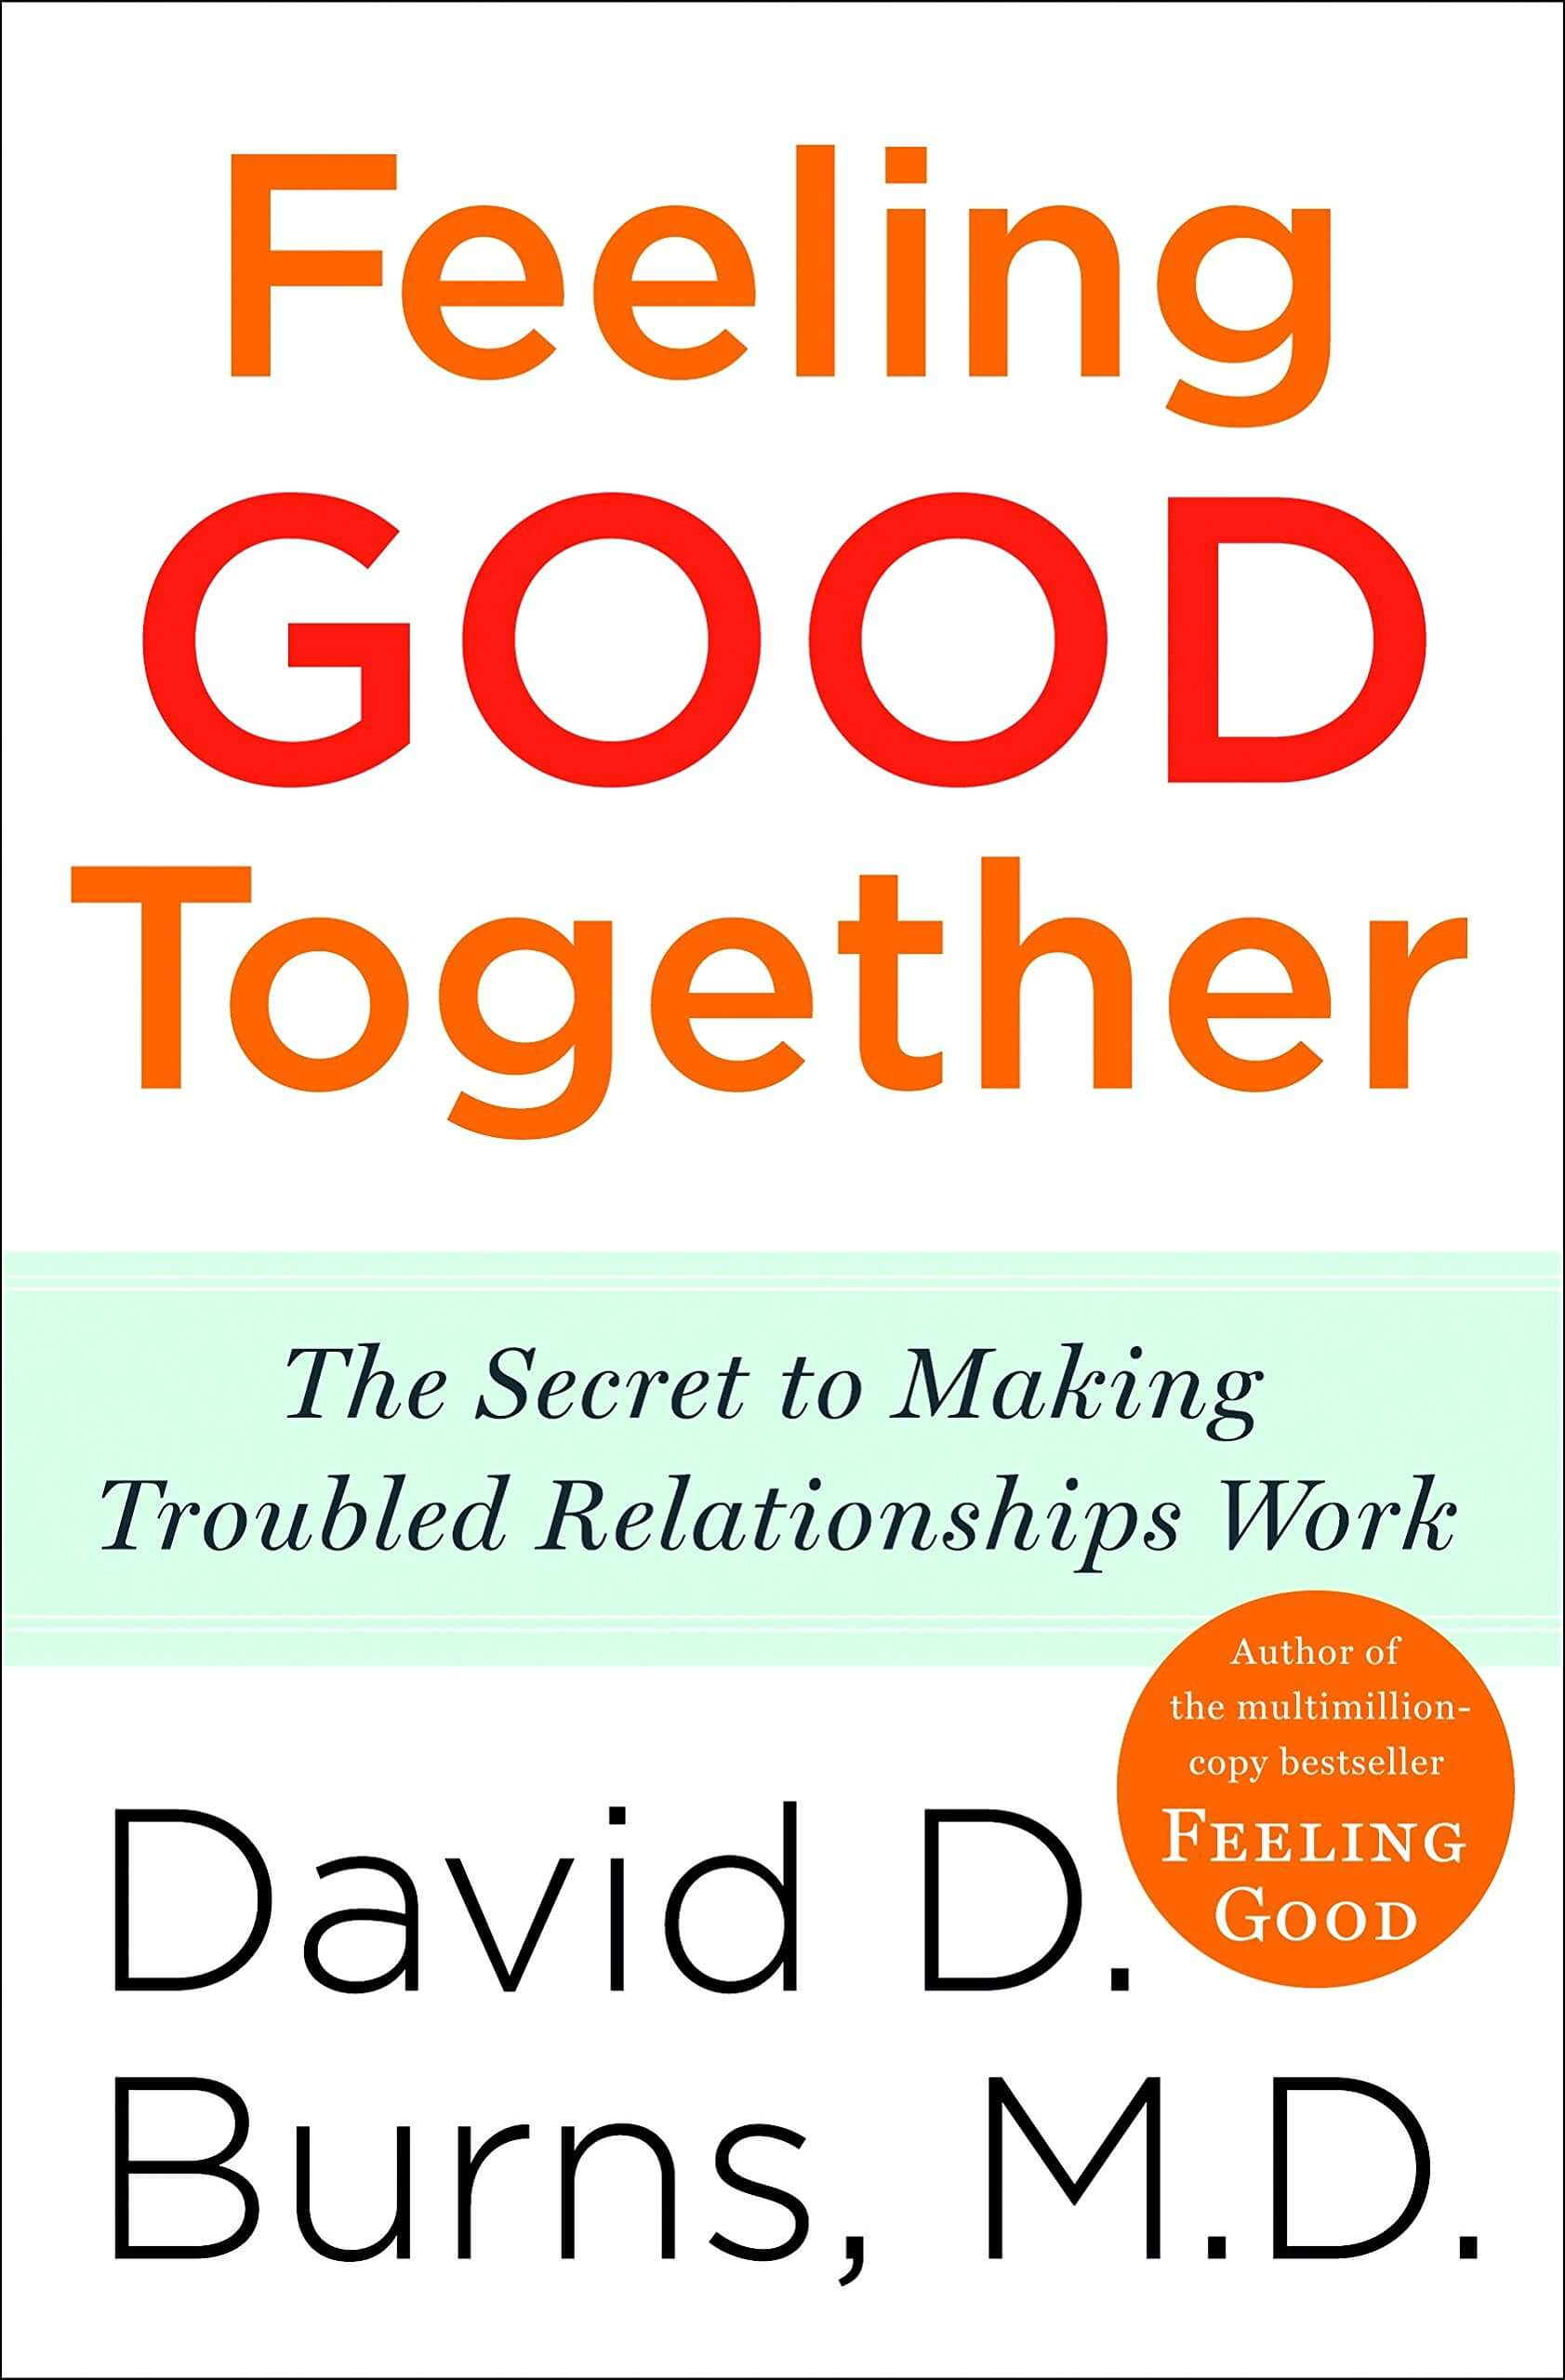 Feeling Good Together book by David D. Burns, M.D.